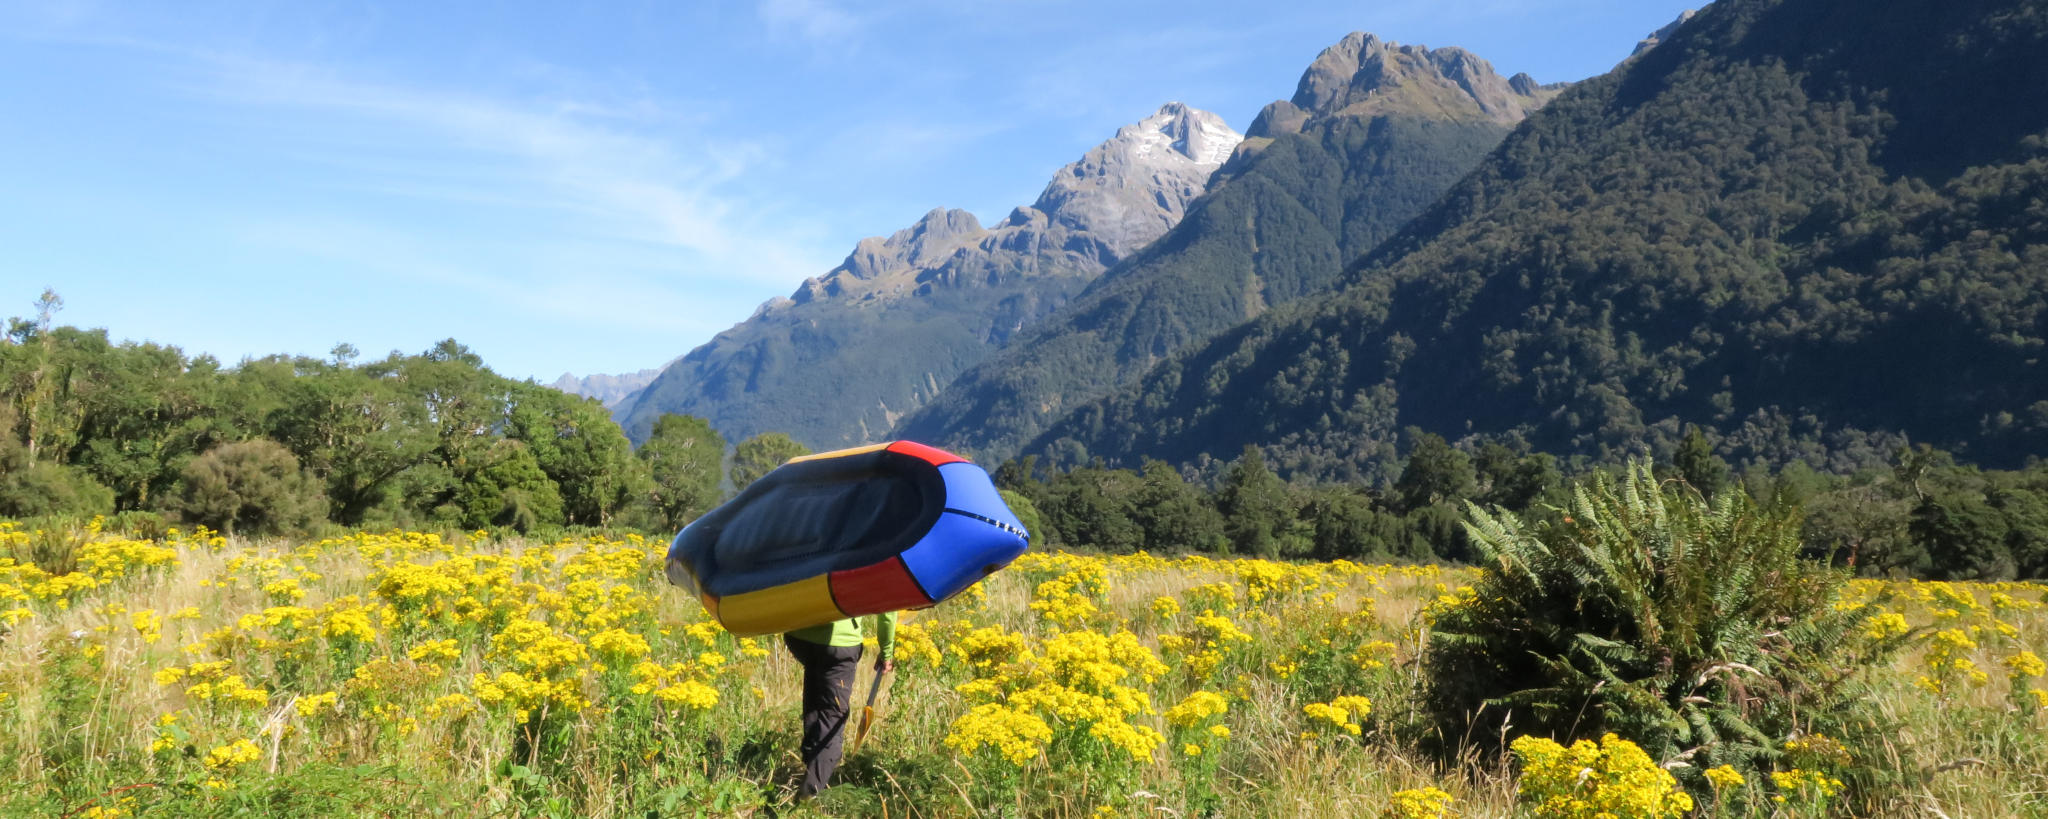 Packrafting the Hollyford Pyke Loop in New Zealand